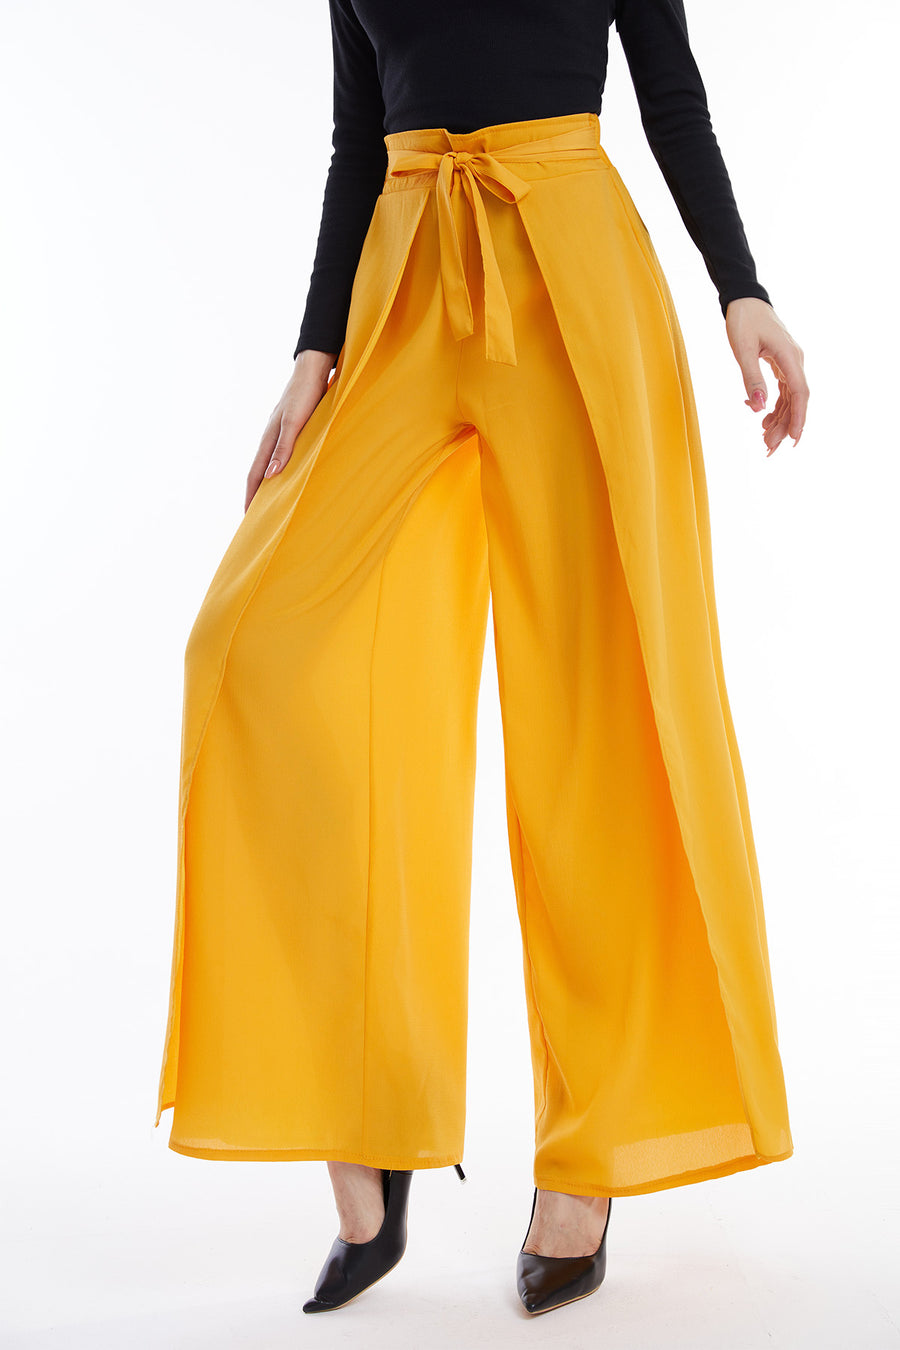 Mantra Pakistan Yellow Flowy Pants with  Belt | Western Wear